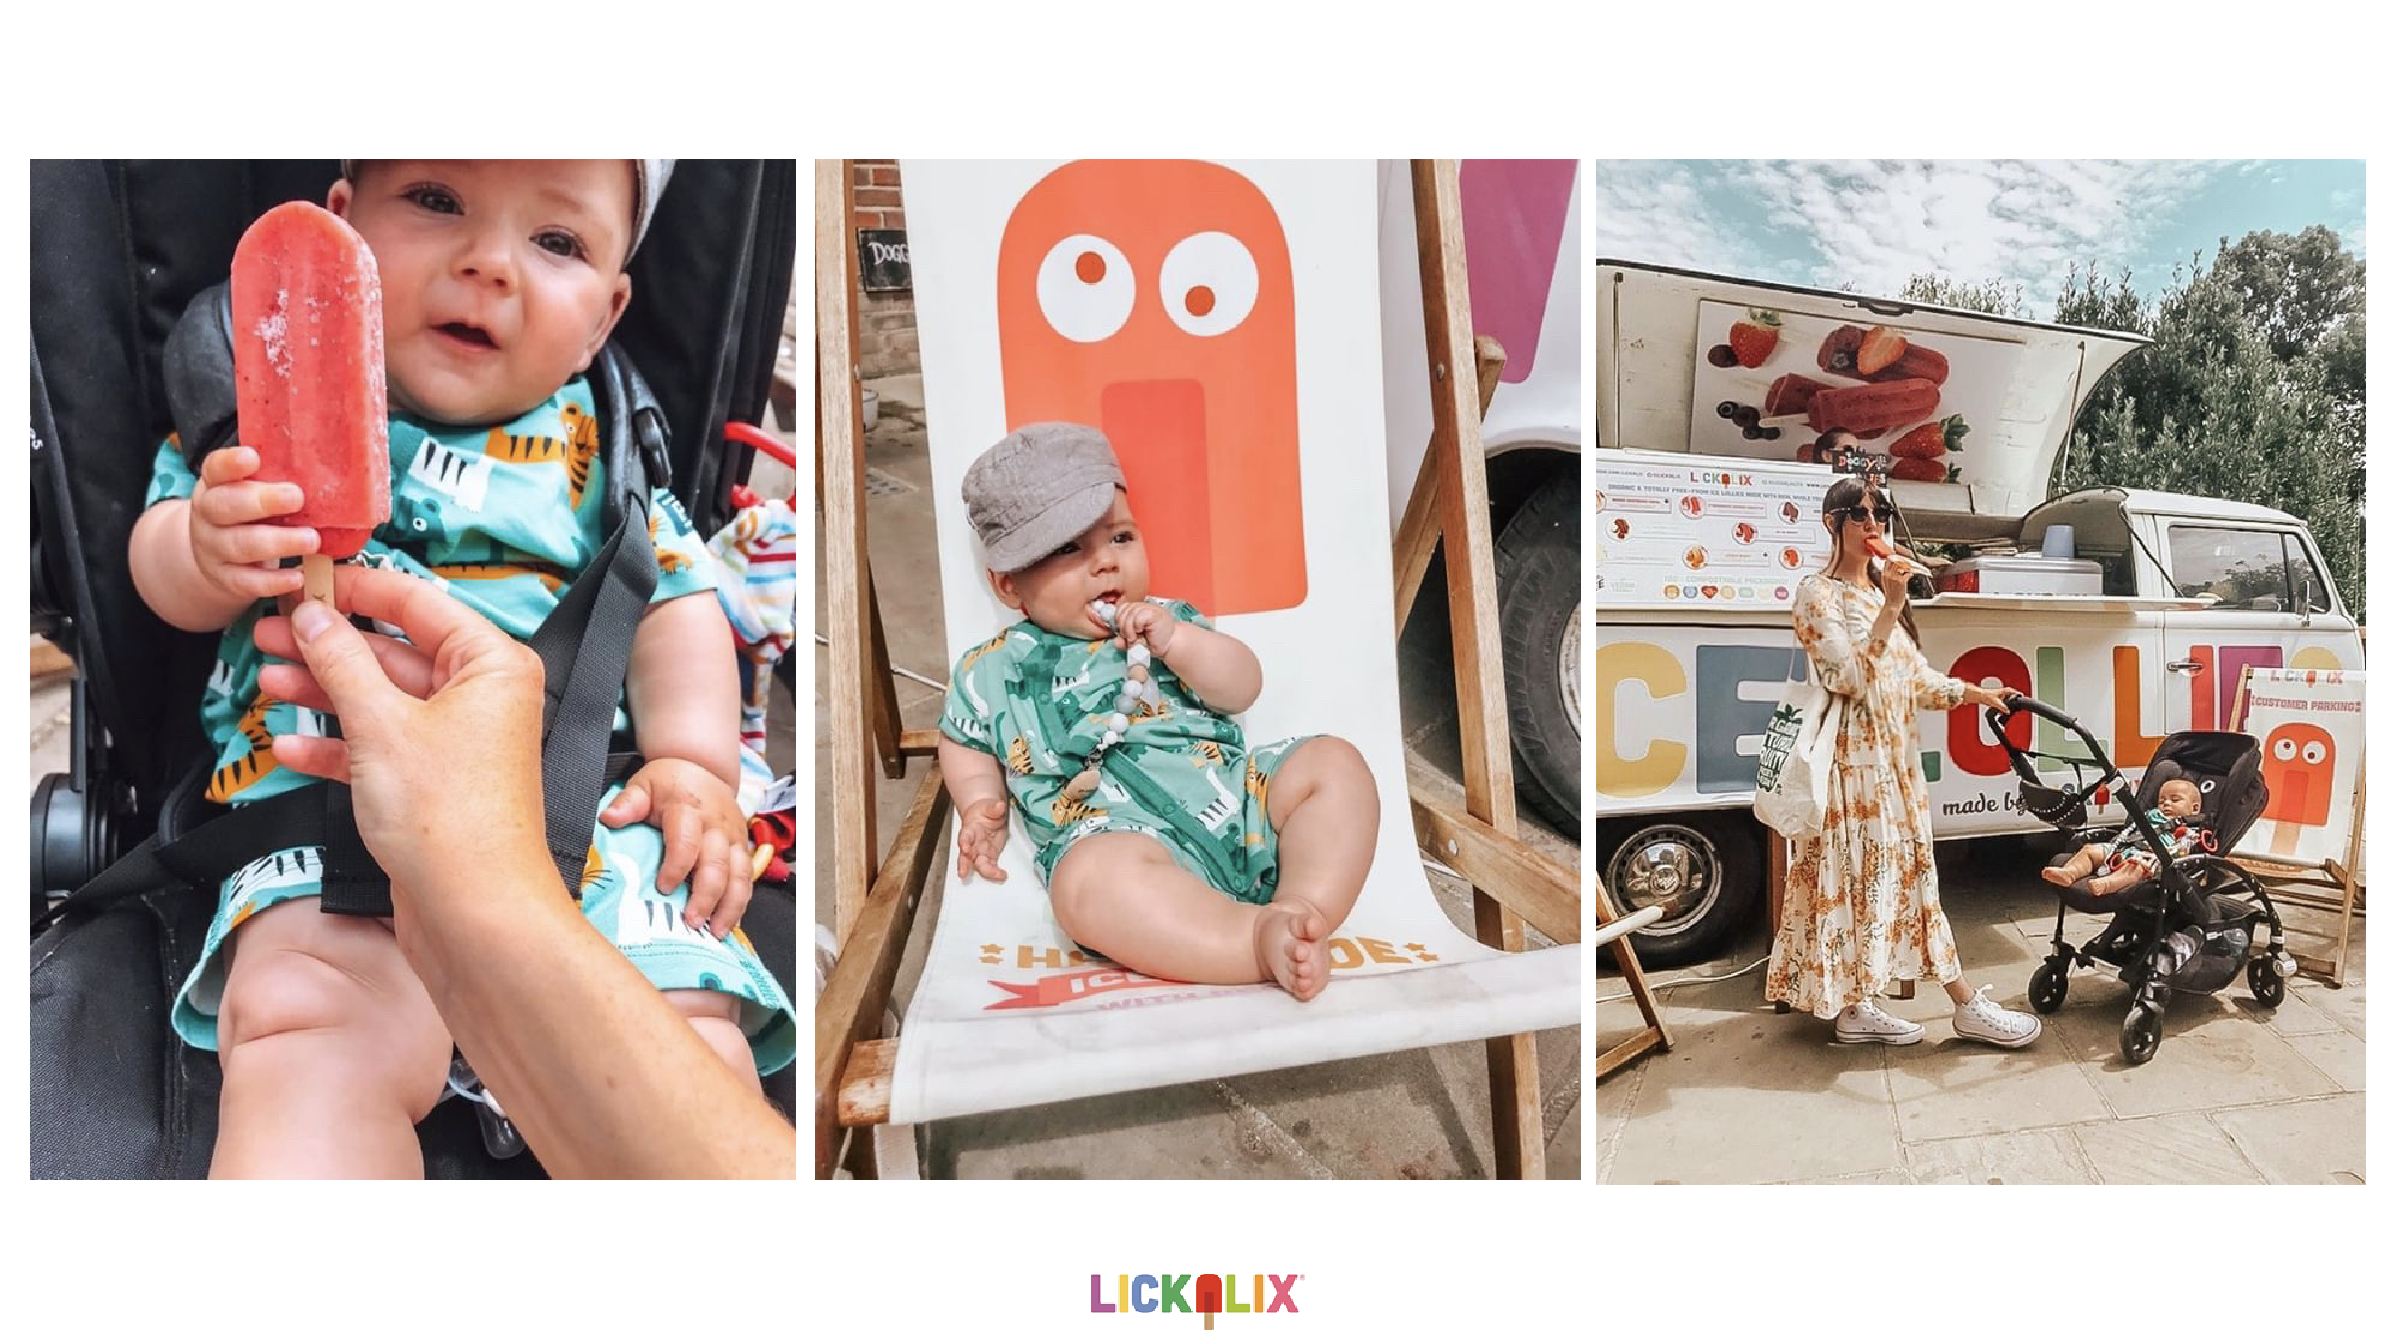 All photos belong to LICKALIX LTD. Photography by  @samanthajbeags . All photos taken at Queens Park Cafe.  We loved meeting Samantha with her little love at Queens Park. She lives locally and is a new mum so she was so excited to give her son his first ice lolly. He was SO cute! Look at his little hands holding the lolly! Thank you for sharing these photos with us!